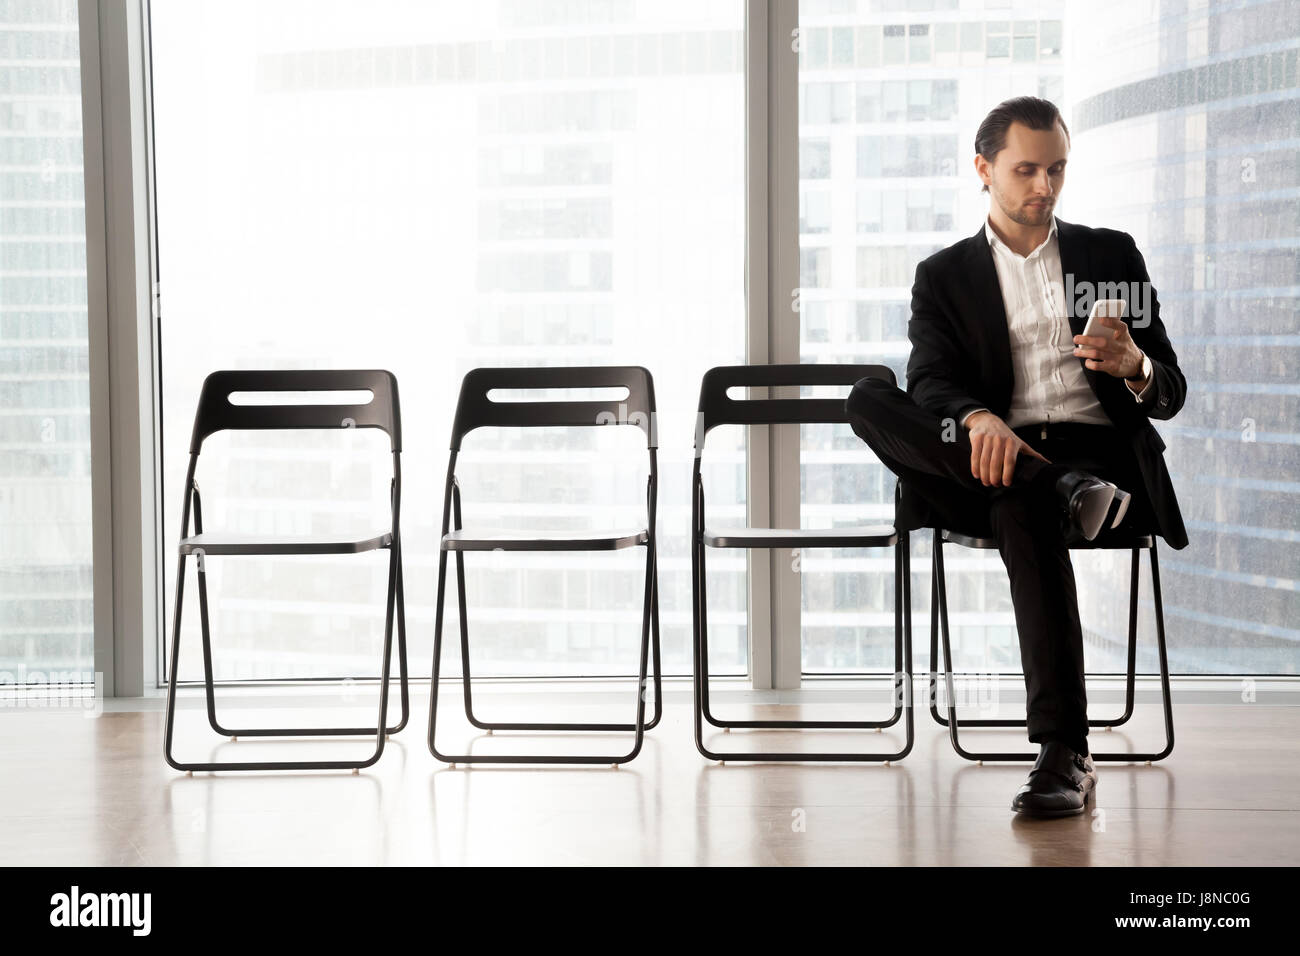 Man with cellphone waiting his turn on interview - Stock Image